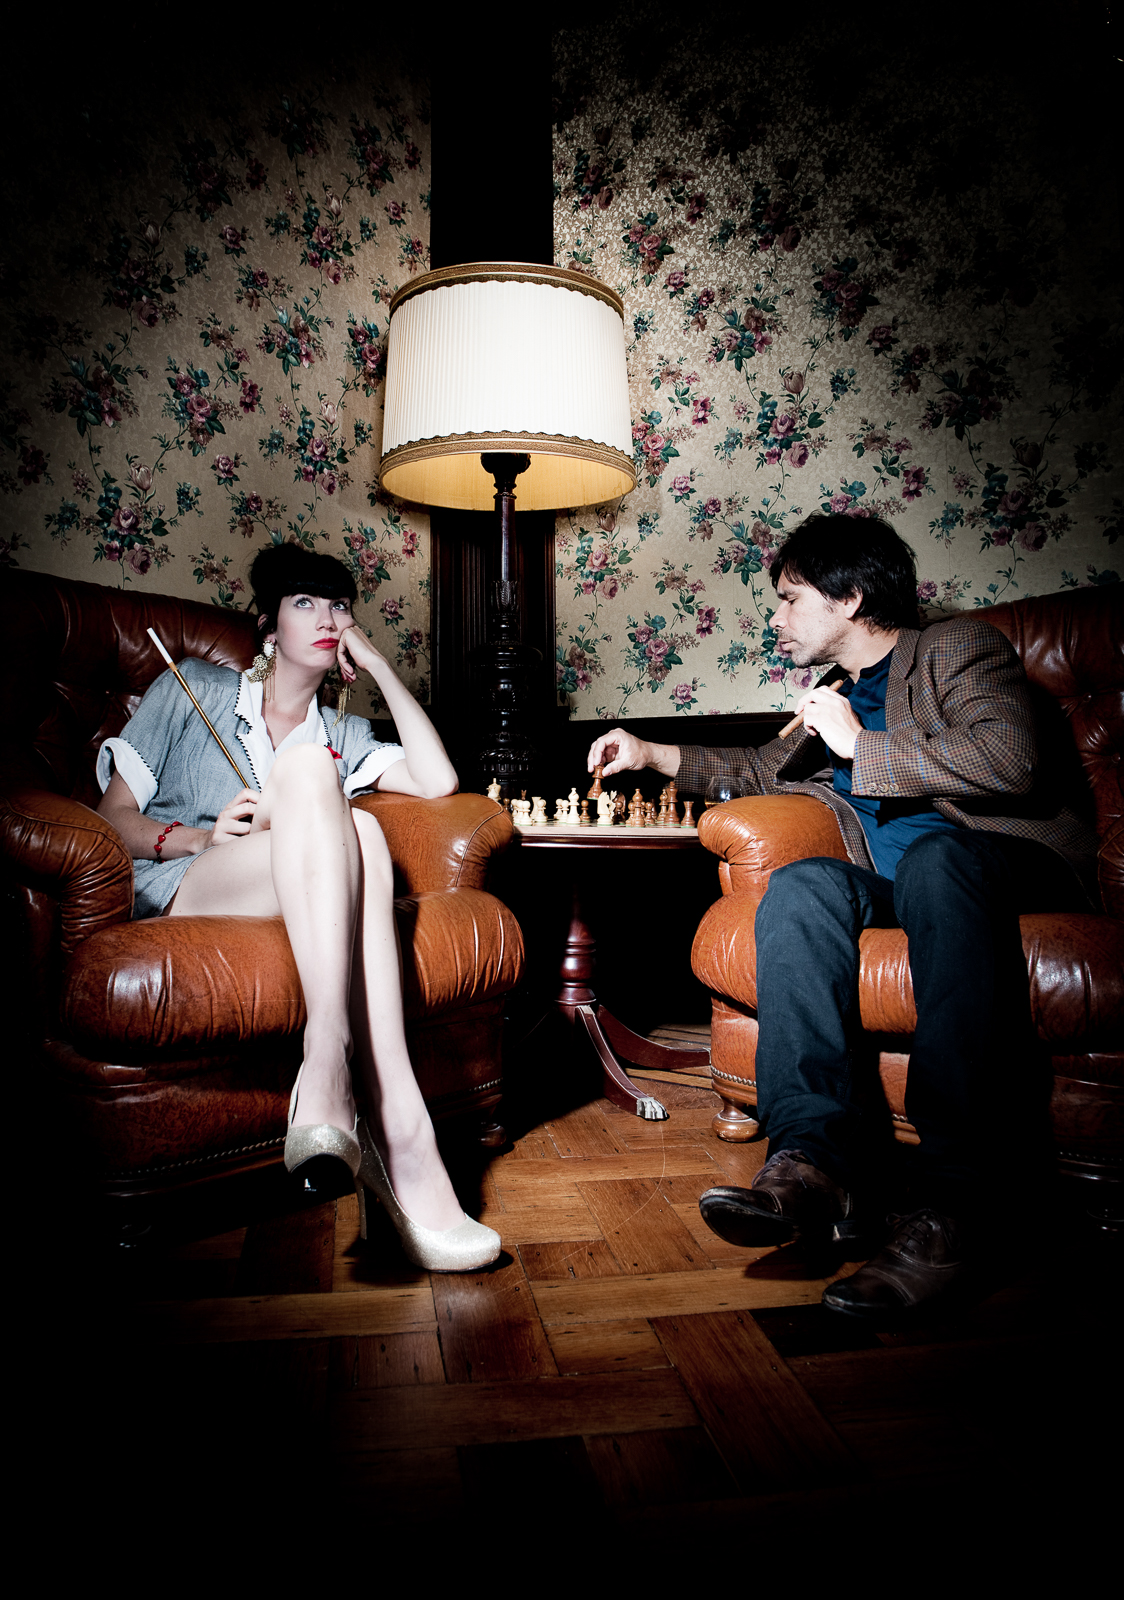 Two people, a man and a woman, sitting in chesterfields playing a game of chess to kill time.